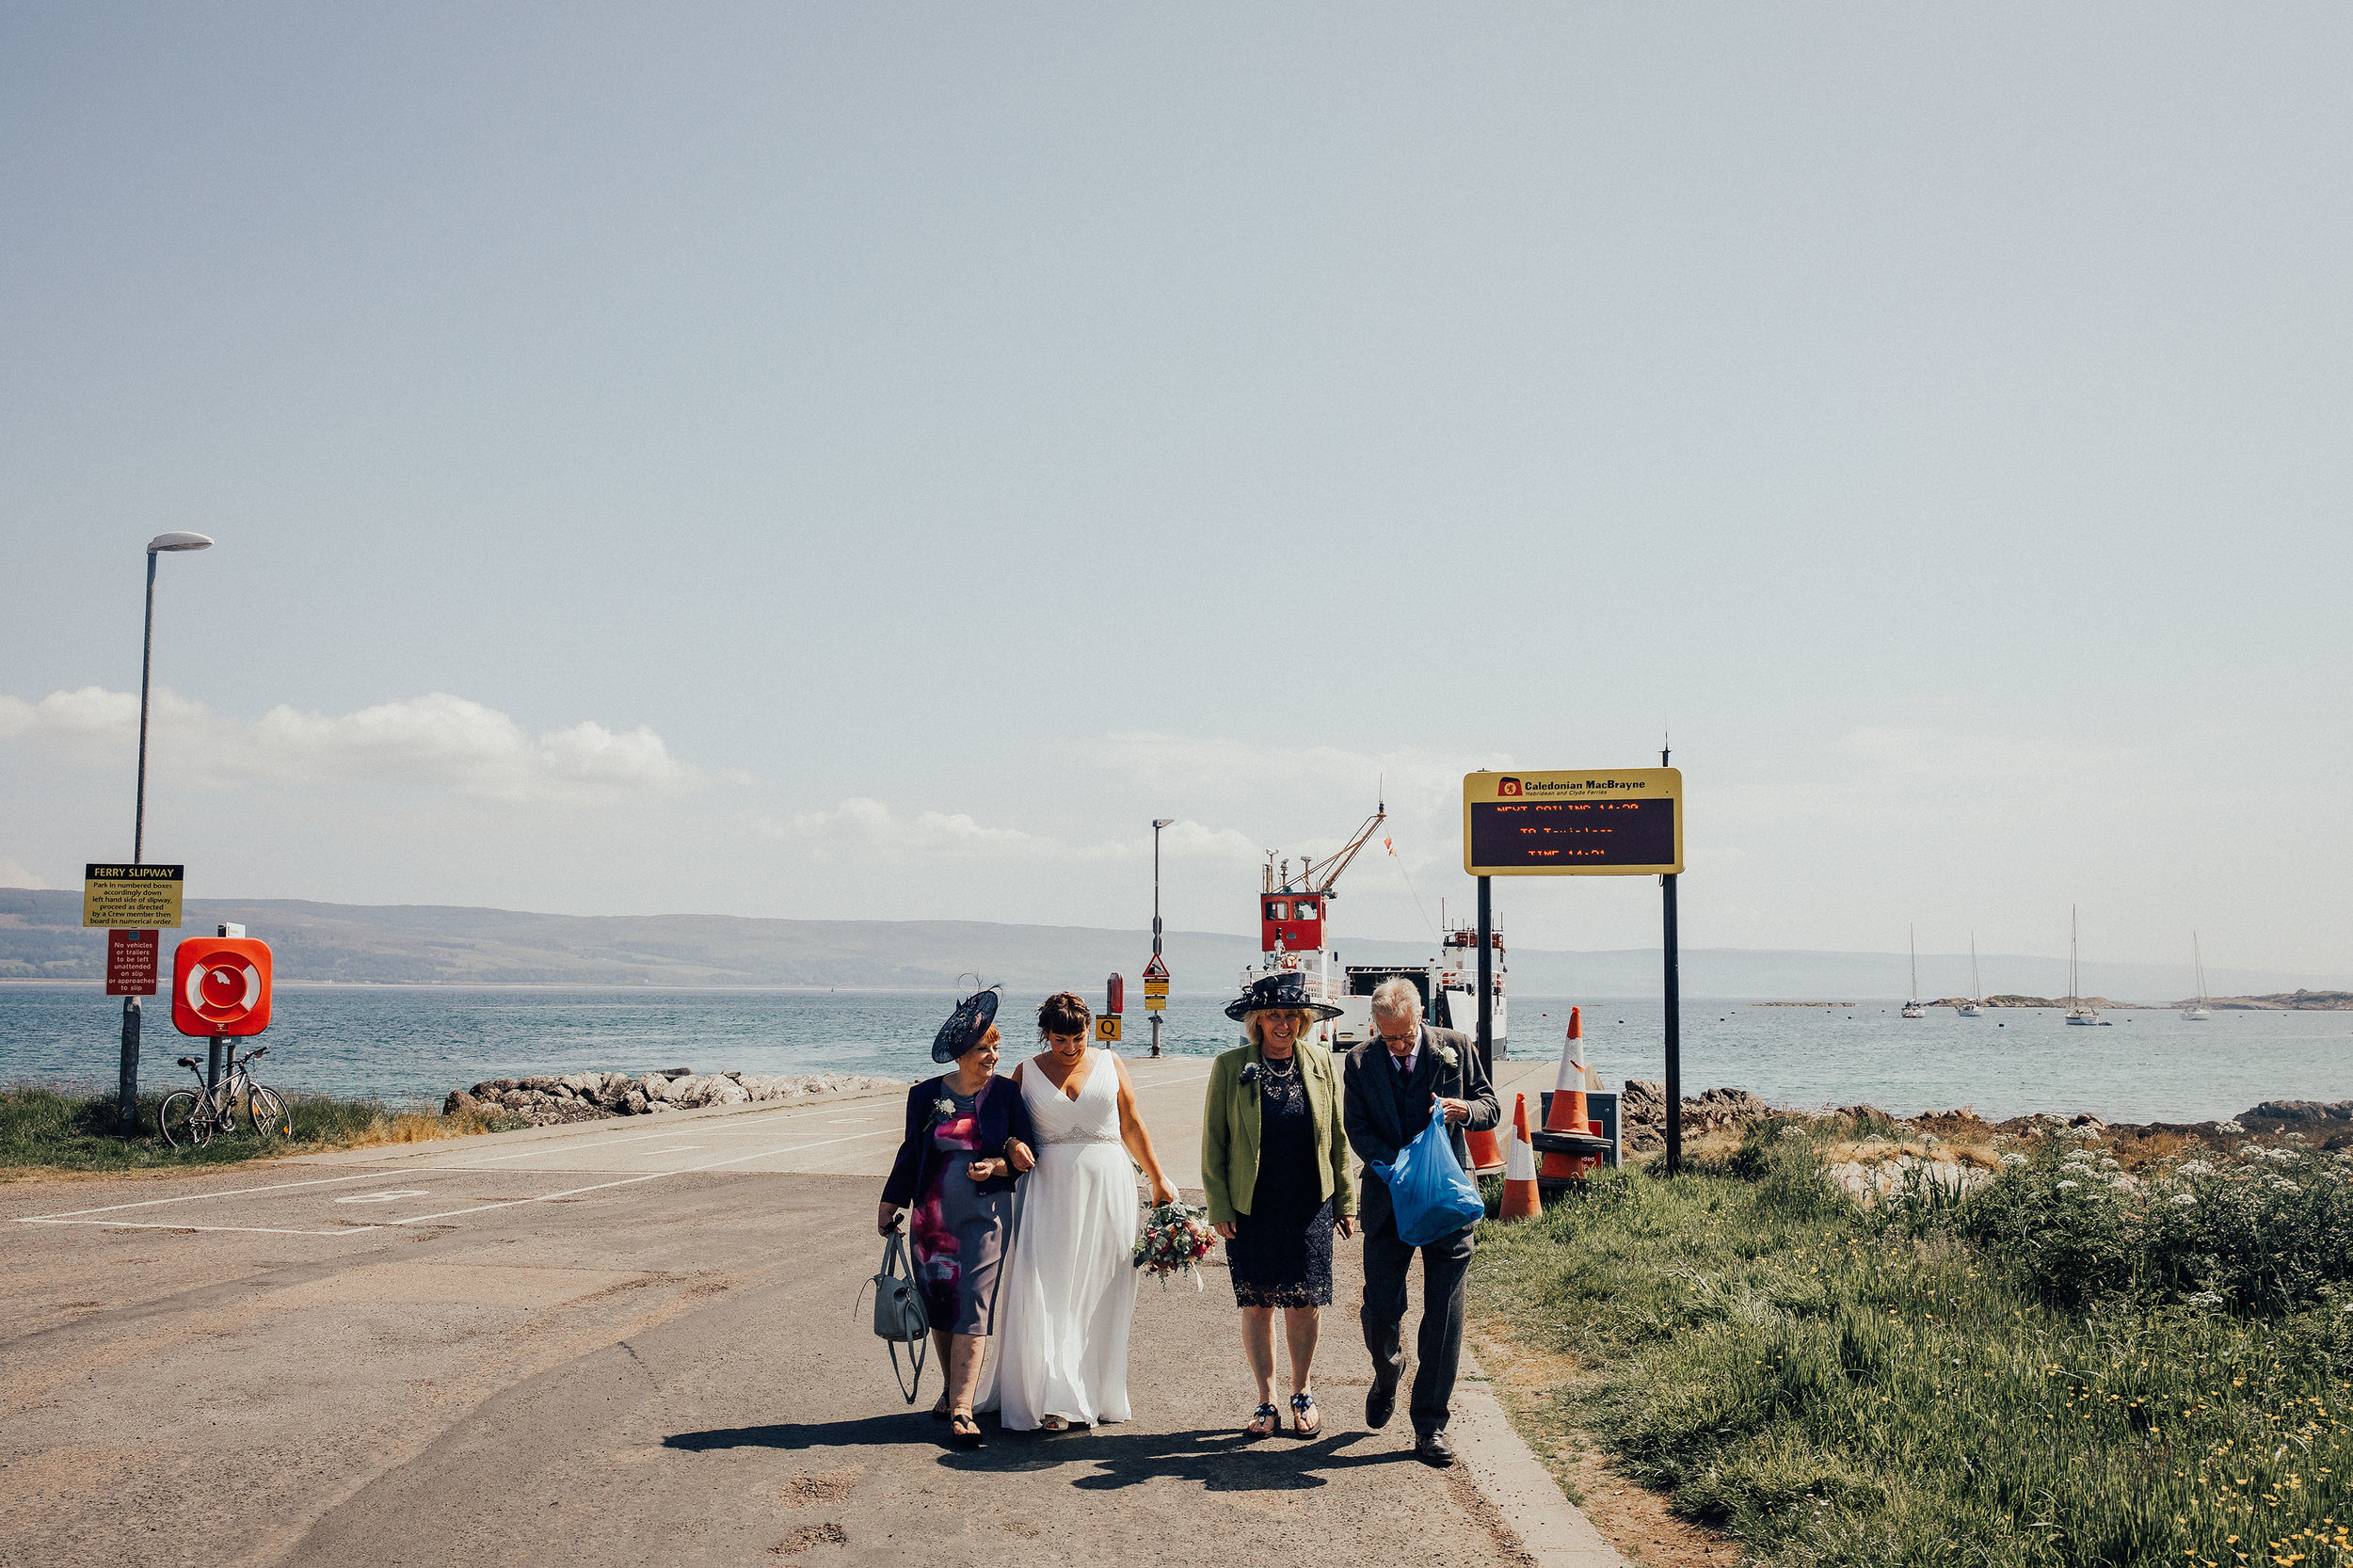 SCOTTISH_ELOPEMENT_PHOTOGRAPHER_PJ_PHILLIPS_PHOTOGRAPHY_112.jpg